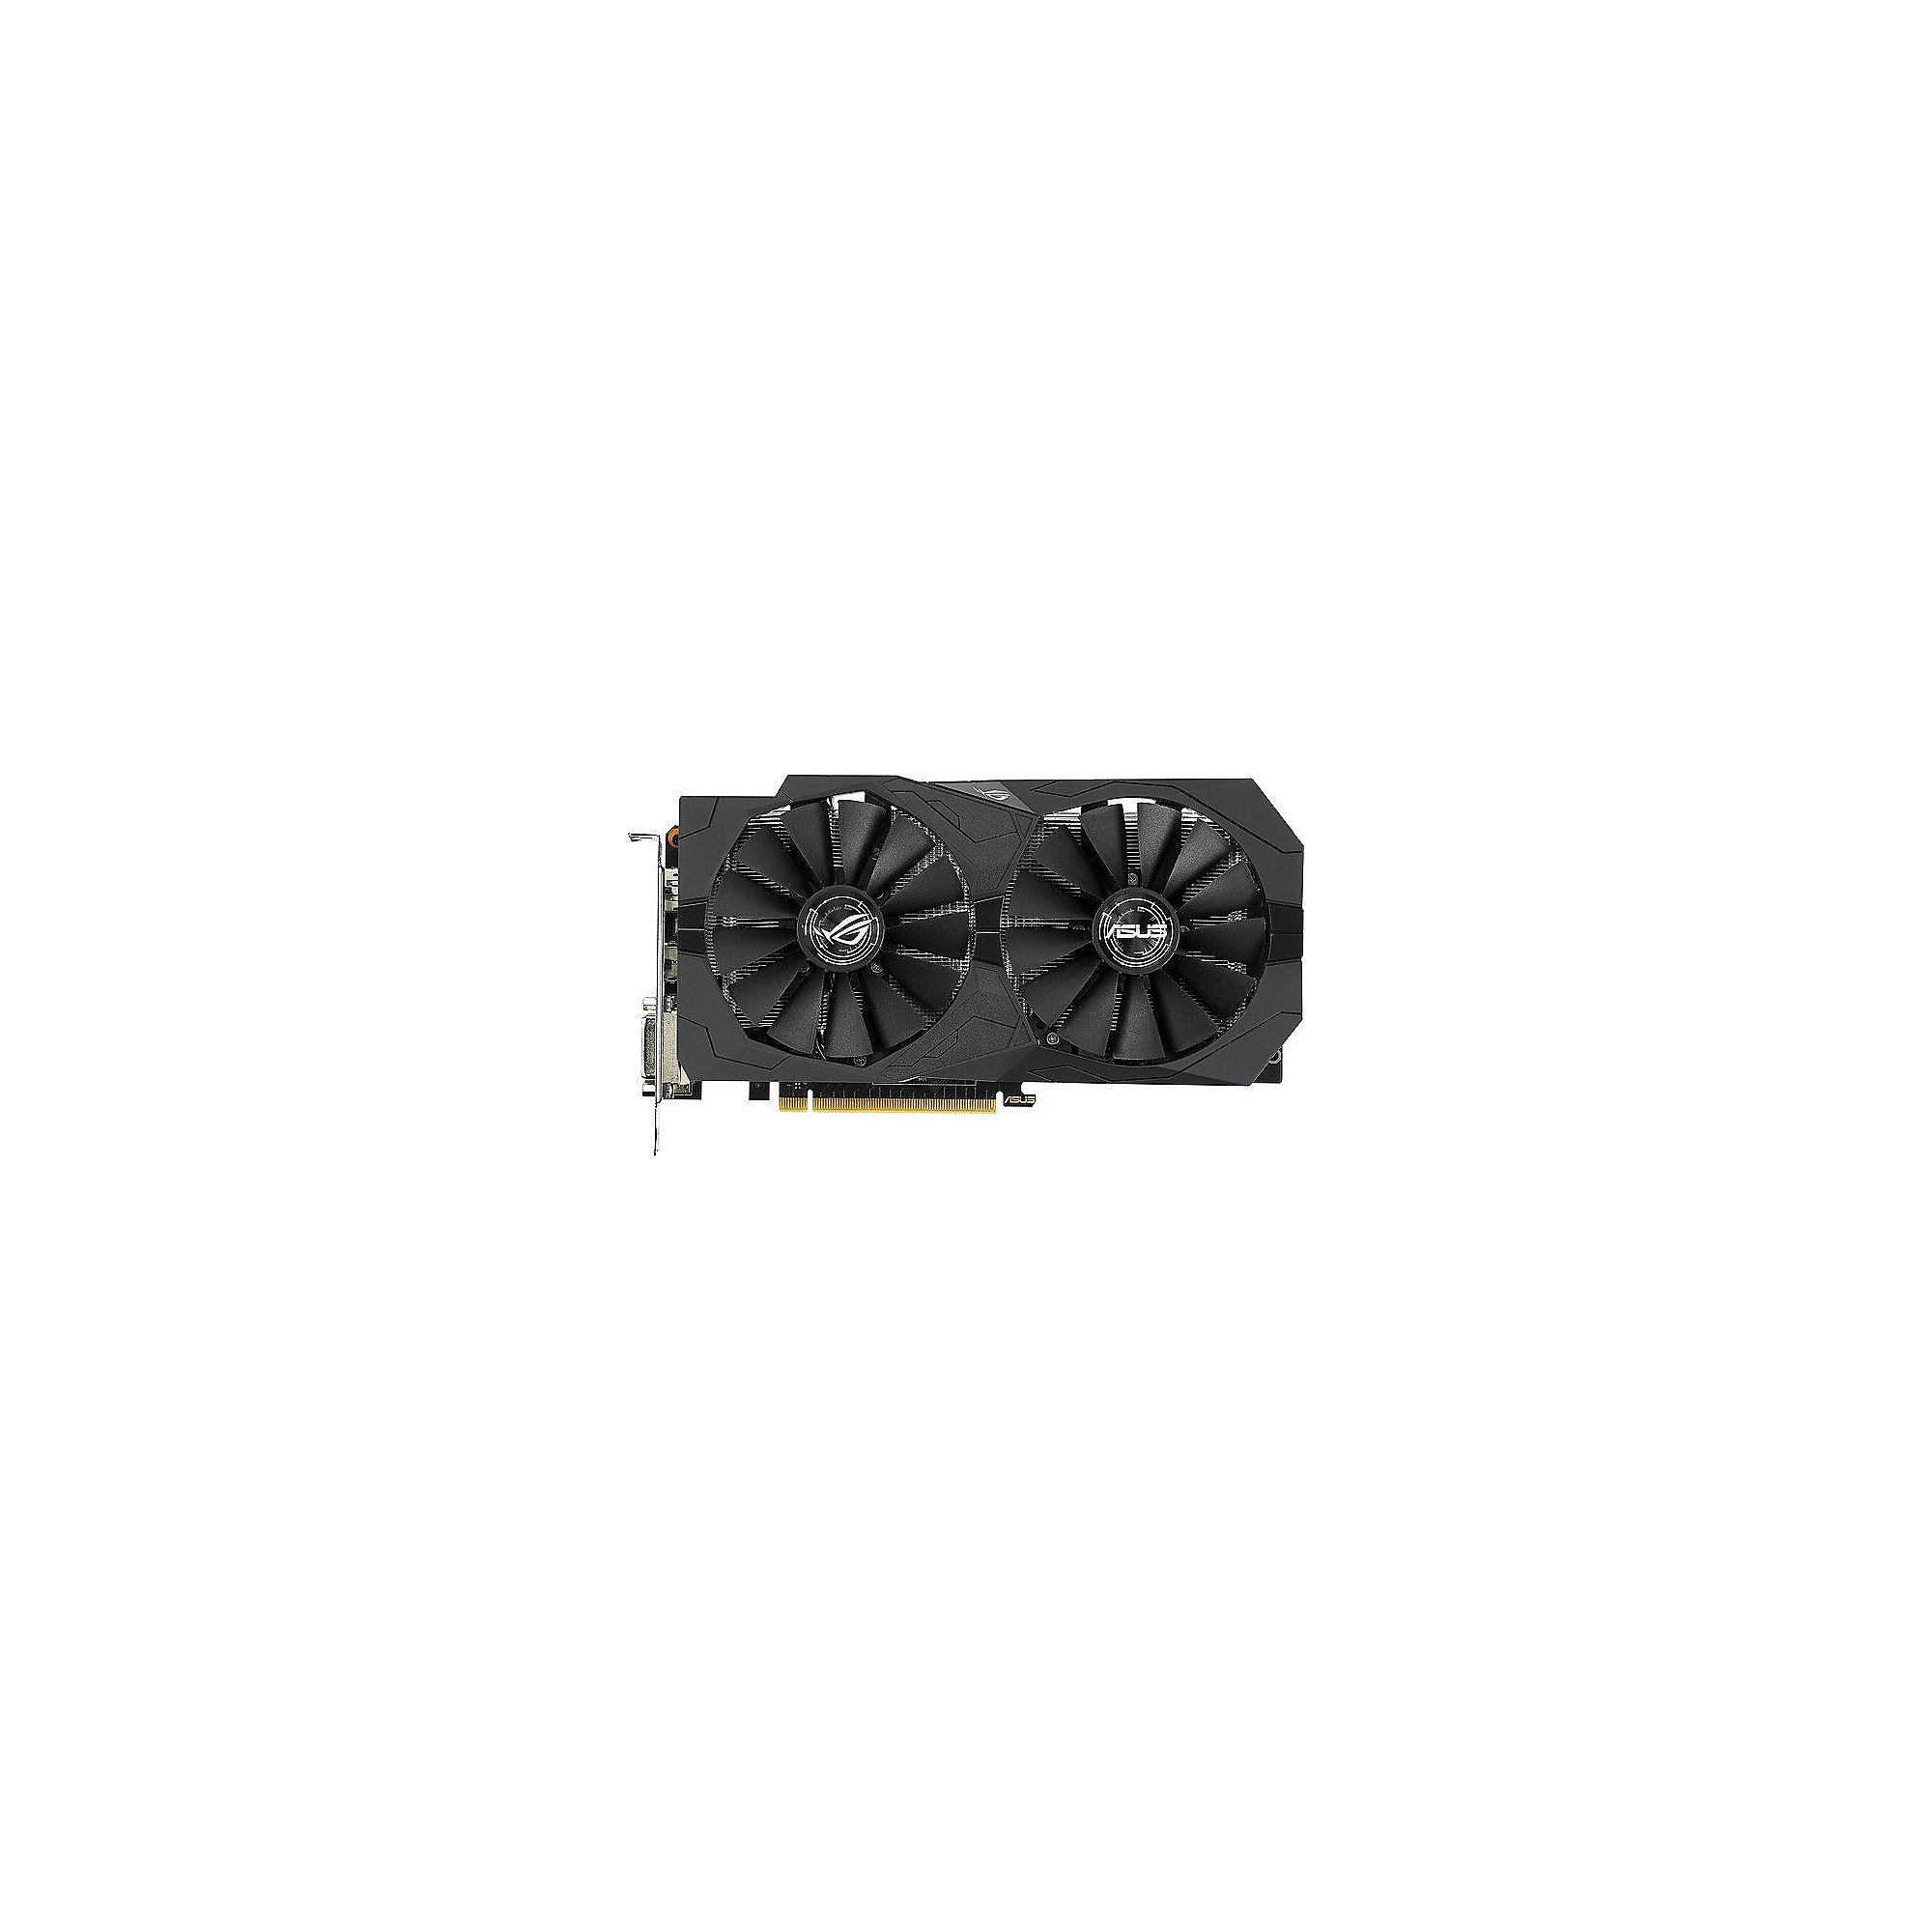 Asus GeForce GTX 1050Ti Strix ROG 4GB GDDR5 2xDVI/HDMI/DP Grafikkarte